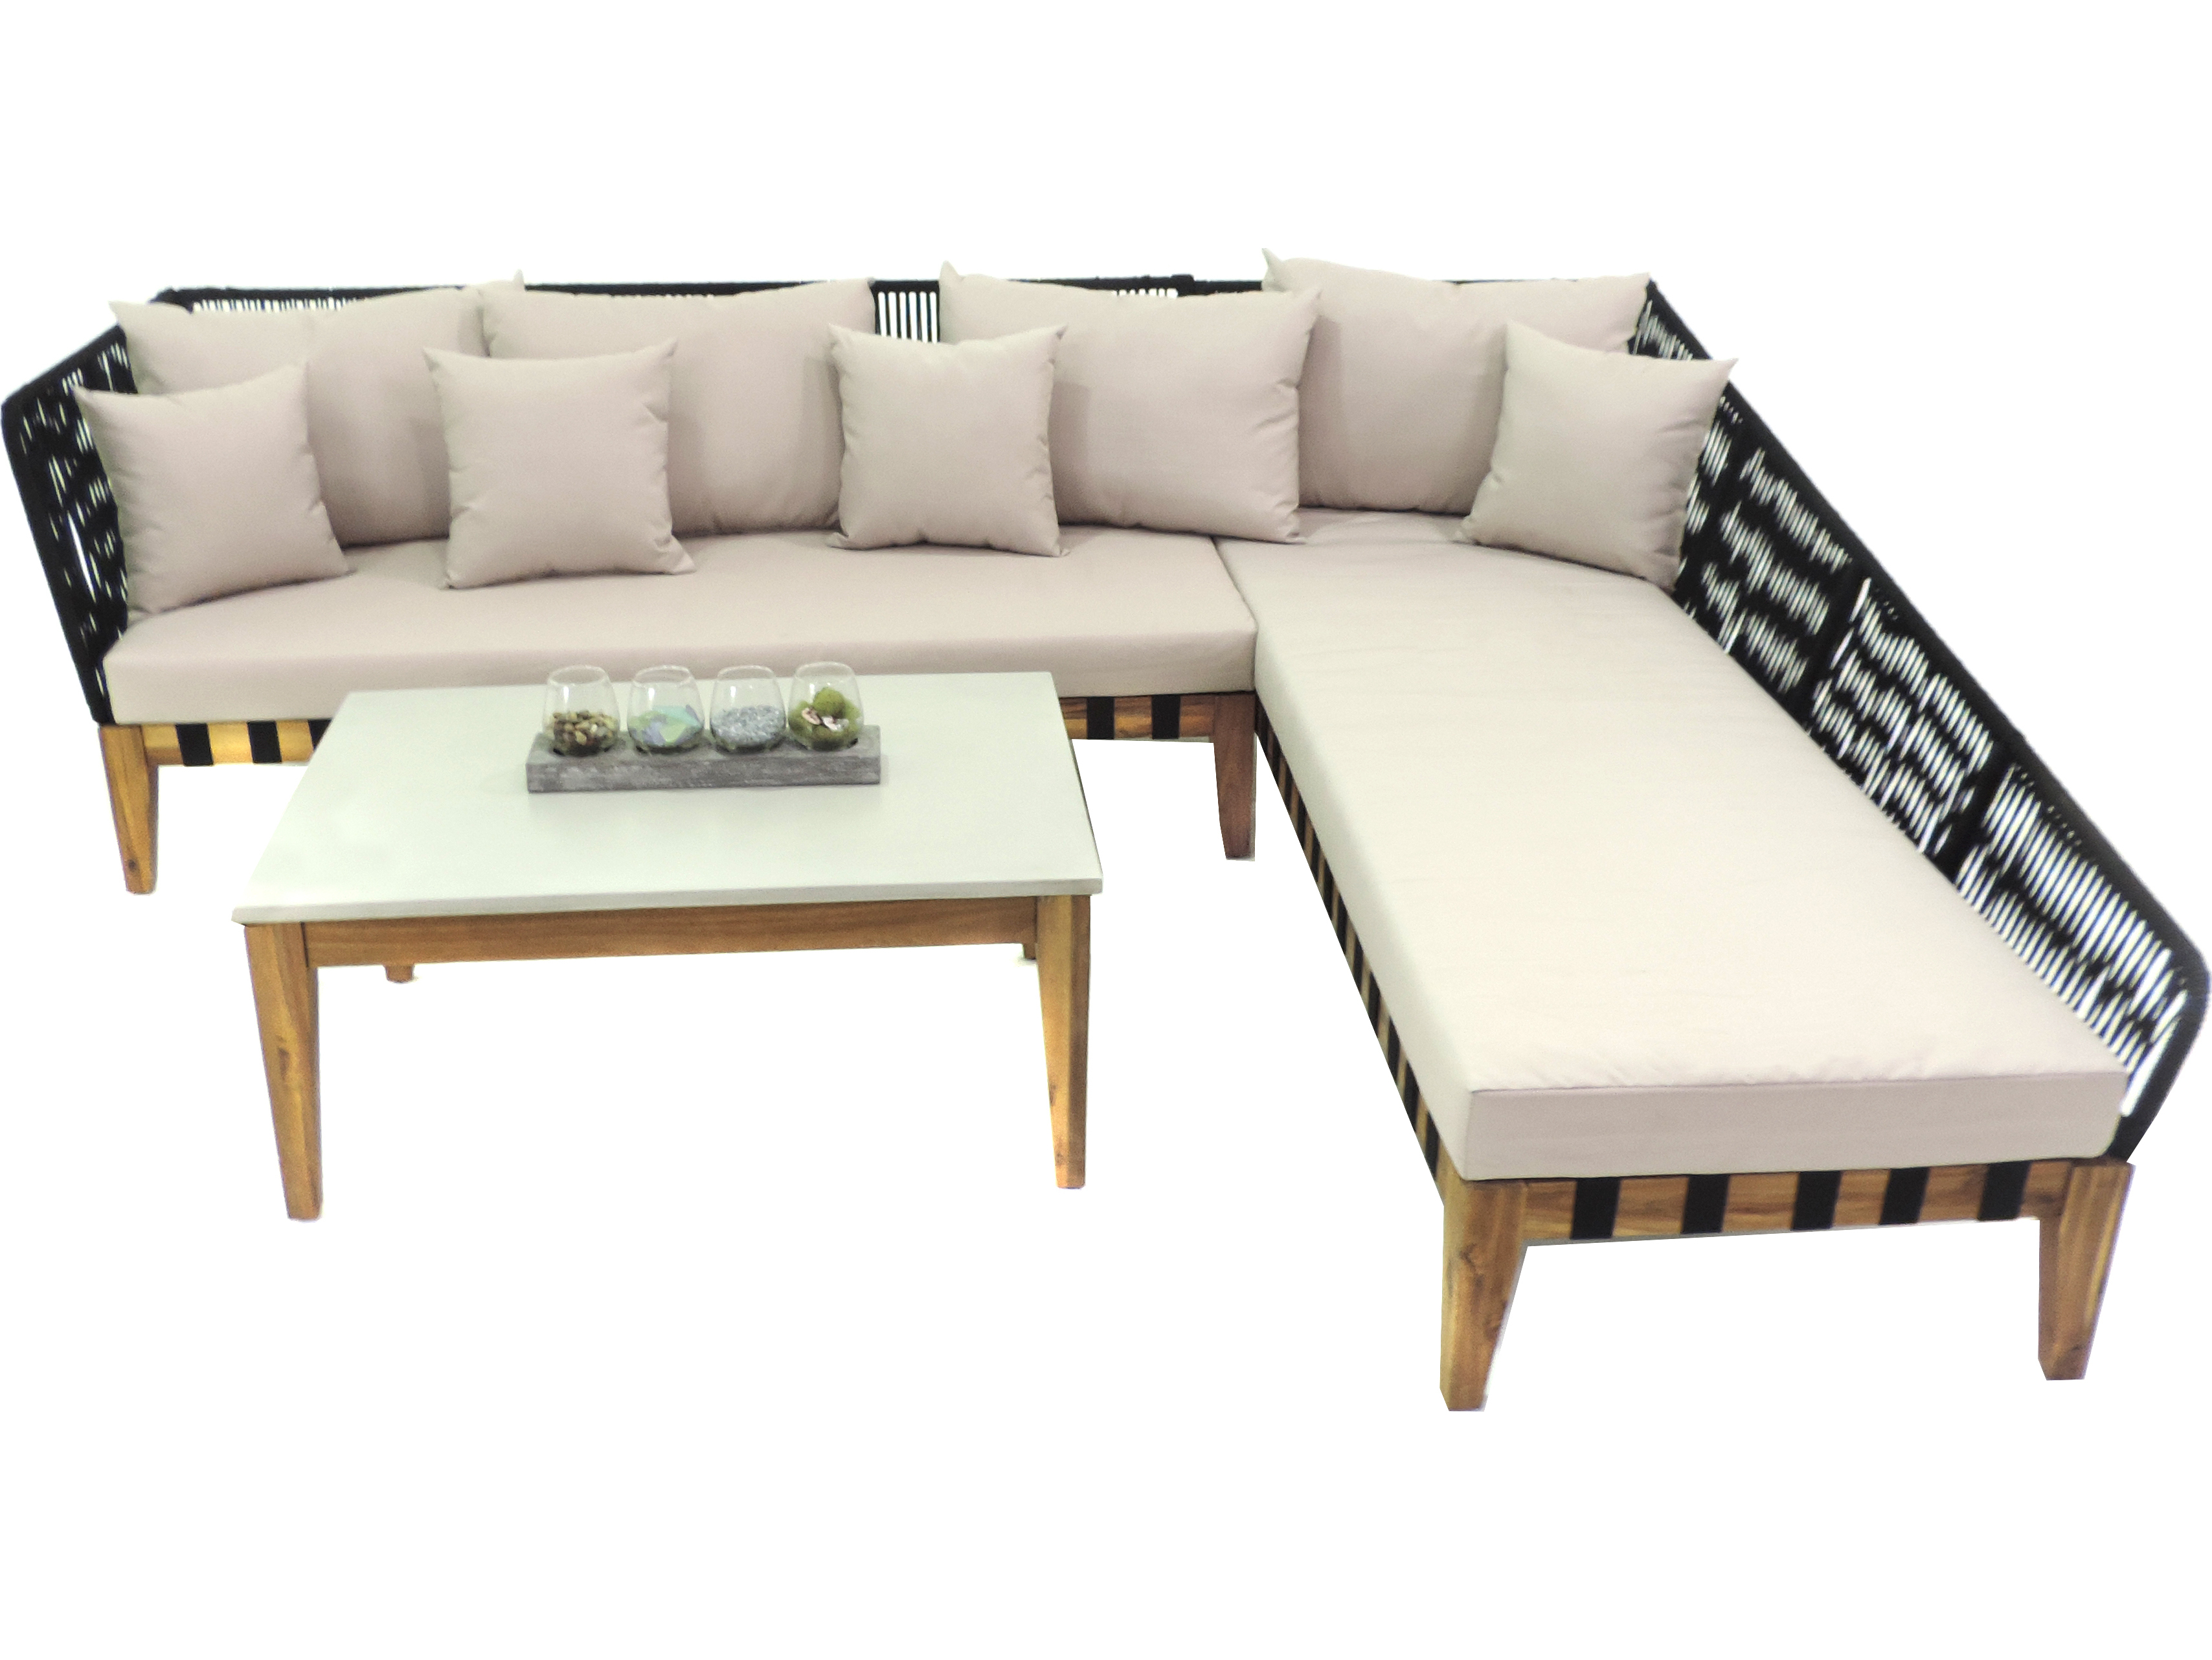 Patio Heaven Broad 3 Piece Sectional Set